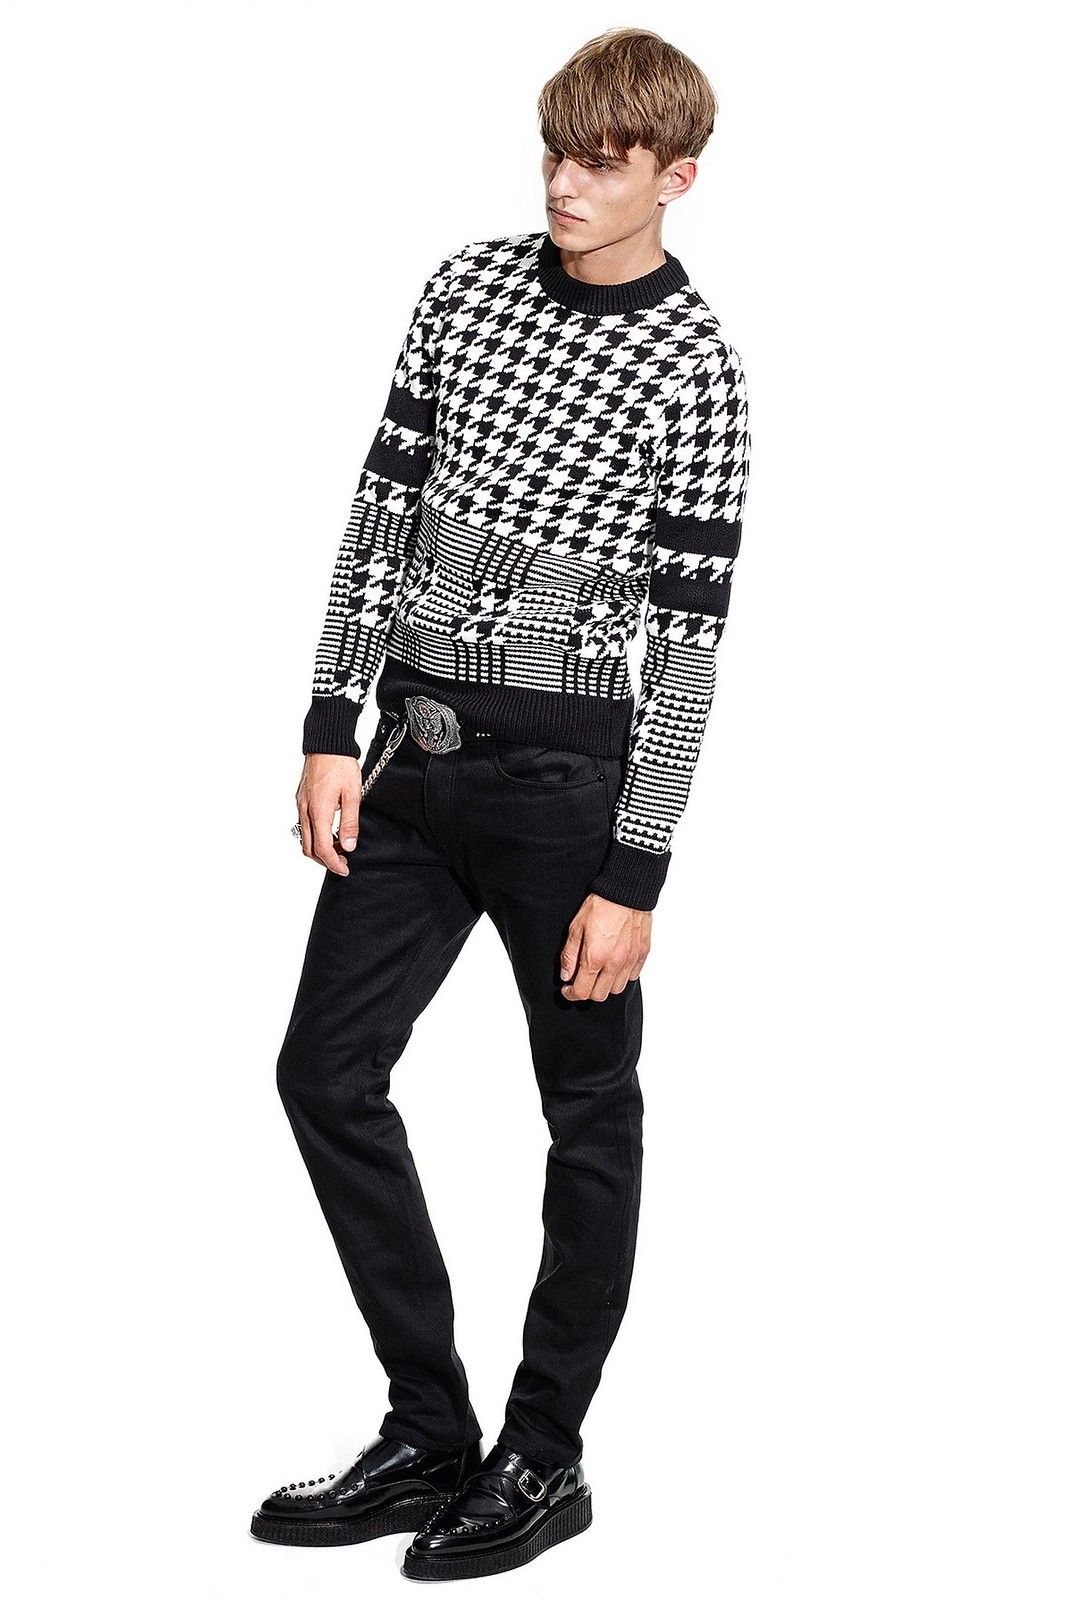 Guerrino Santulliana0006_AW14 DIESEL BLACK GOLD